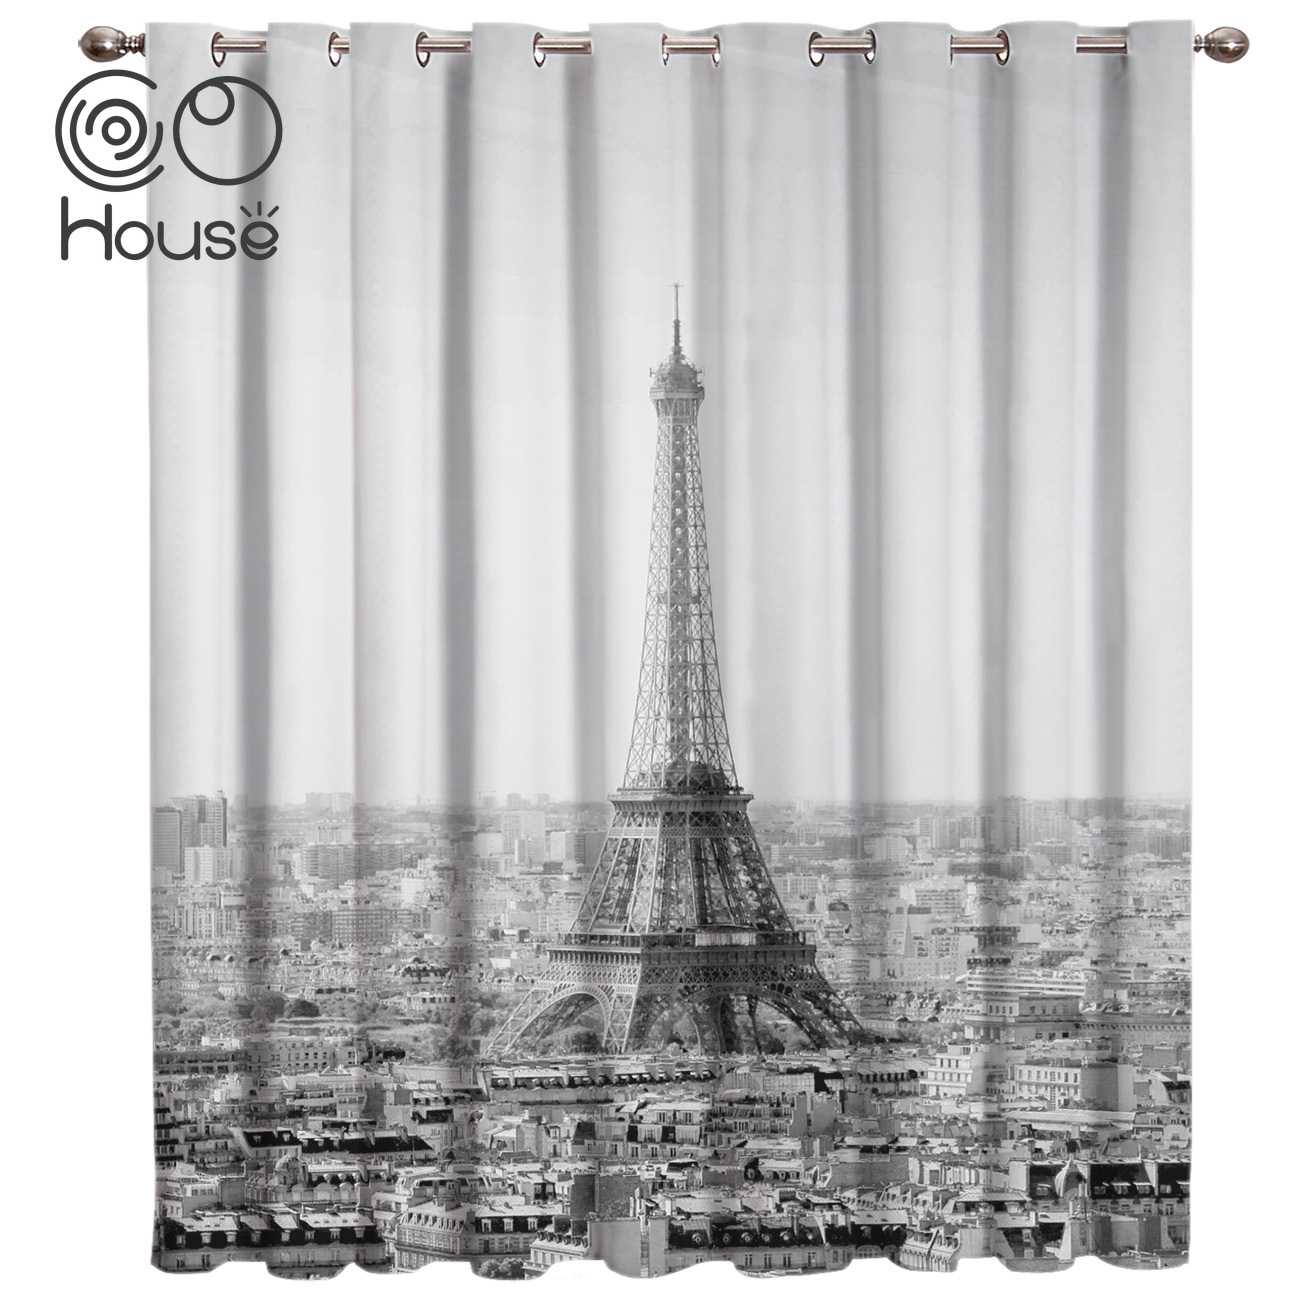 COCOHouse Eiffel Tower Black And White Room Curtains Large Window Living Room Curtain Rod Bedroom Indoor Decor Kids Window Treat